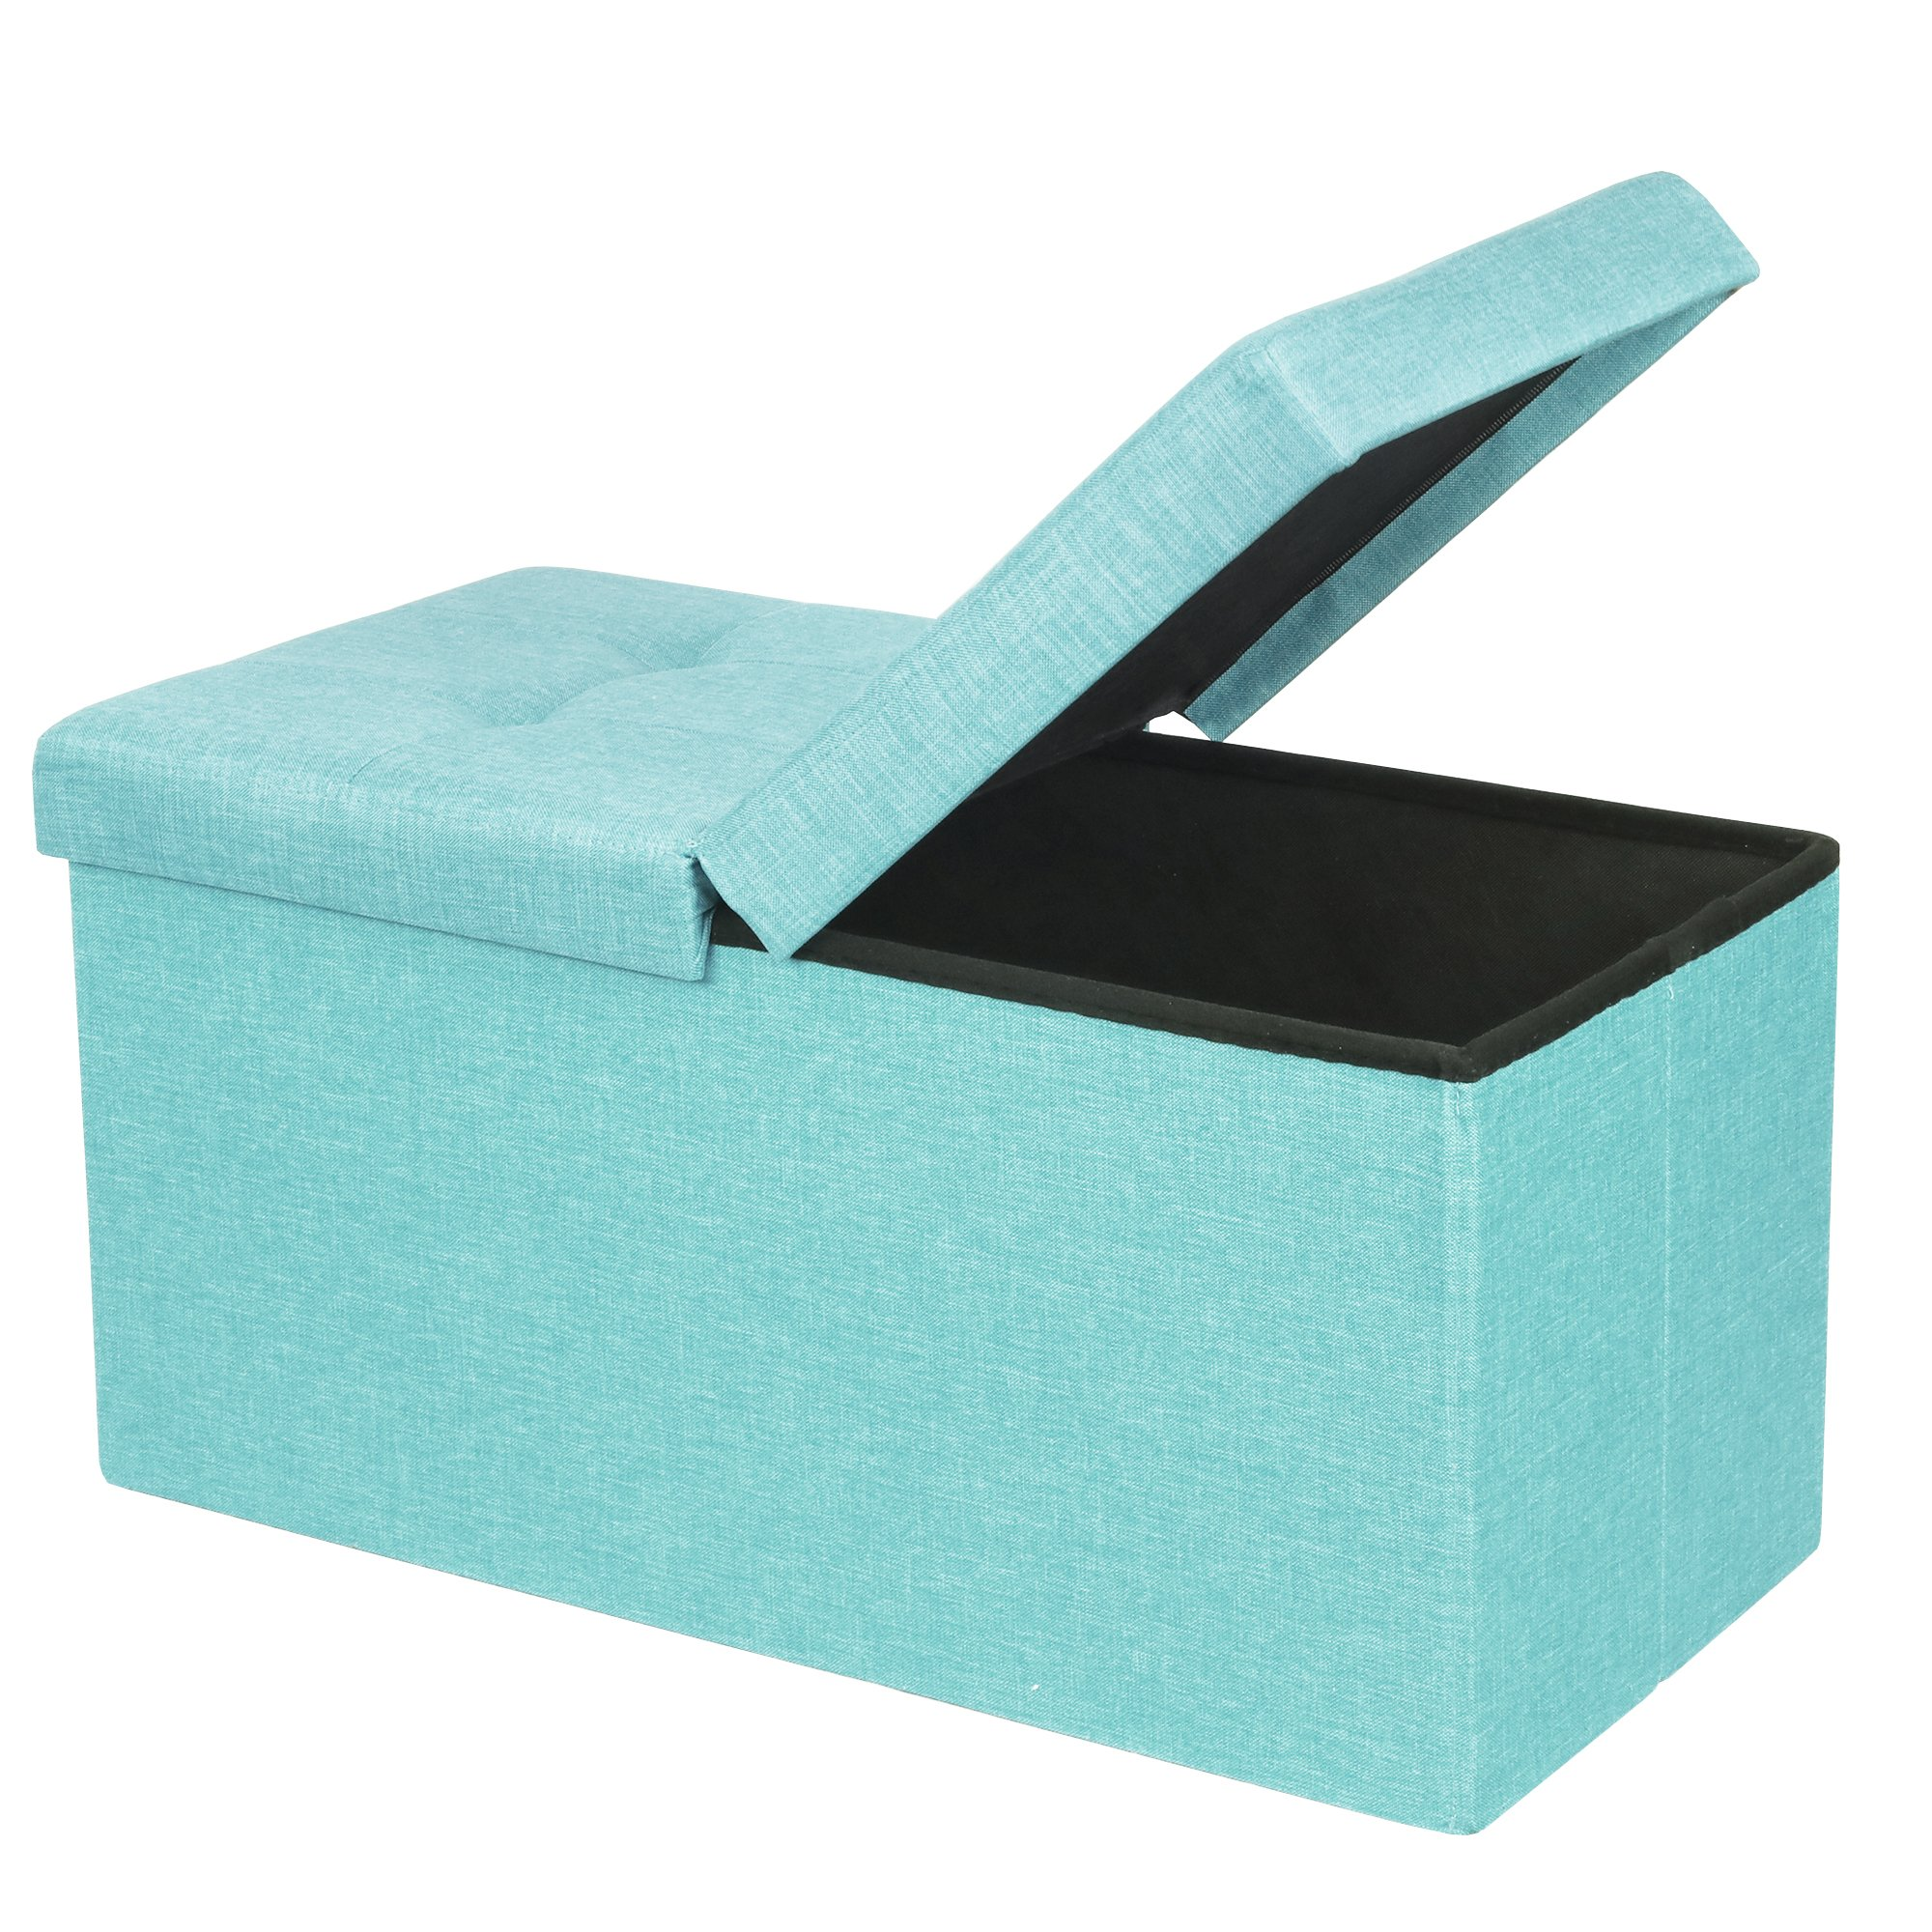 Otto & Ben 30'' Storage Ottoman - Folding Toy Box Chest with Smart Lift Top, Upholstered Tufted Ottomans Bench Foot Rest for Bedroom, Mint Blue